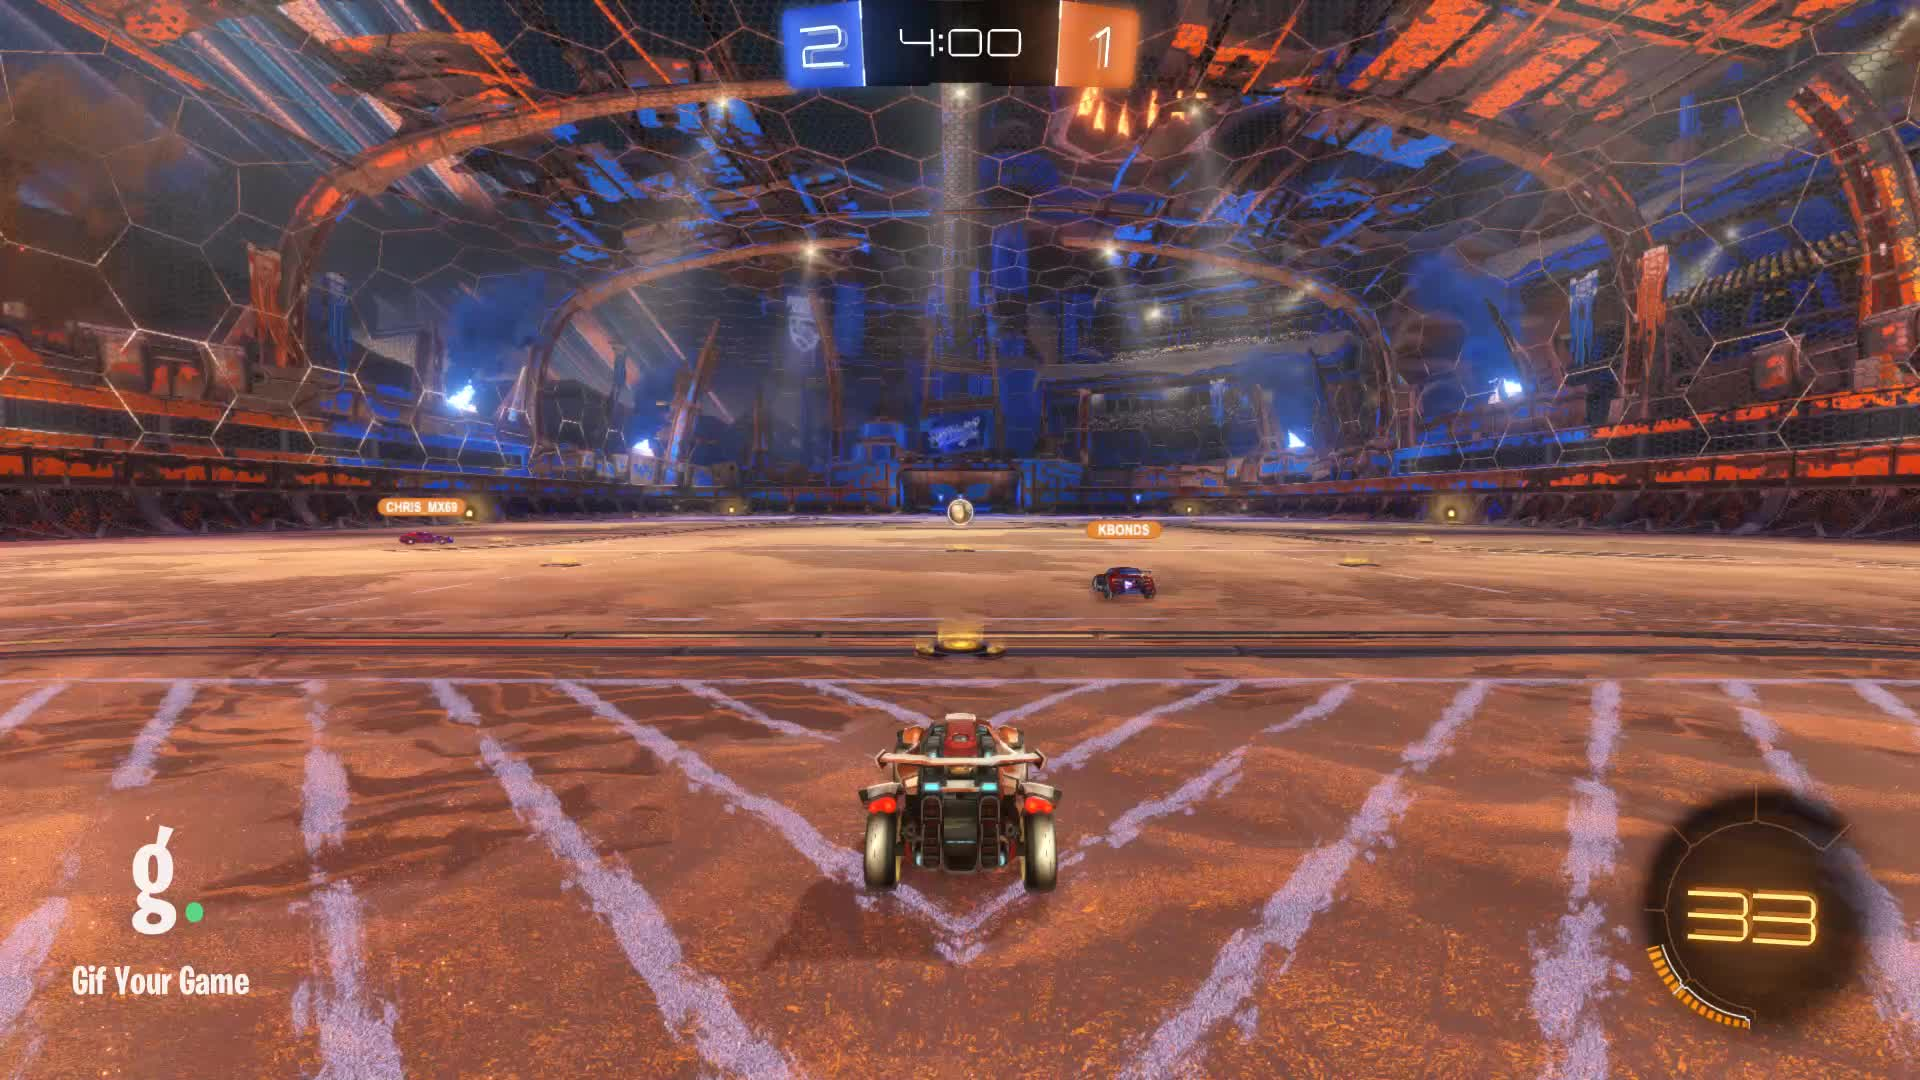 Assist, Gif Your Game, GifYourGame, ItWas...Justified, Rocket League, RocketLeague, Assist 4: ItWas...Justified GIFs